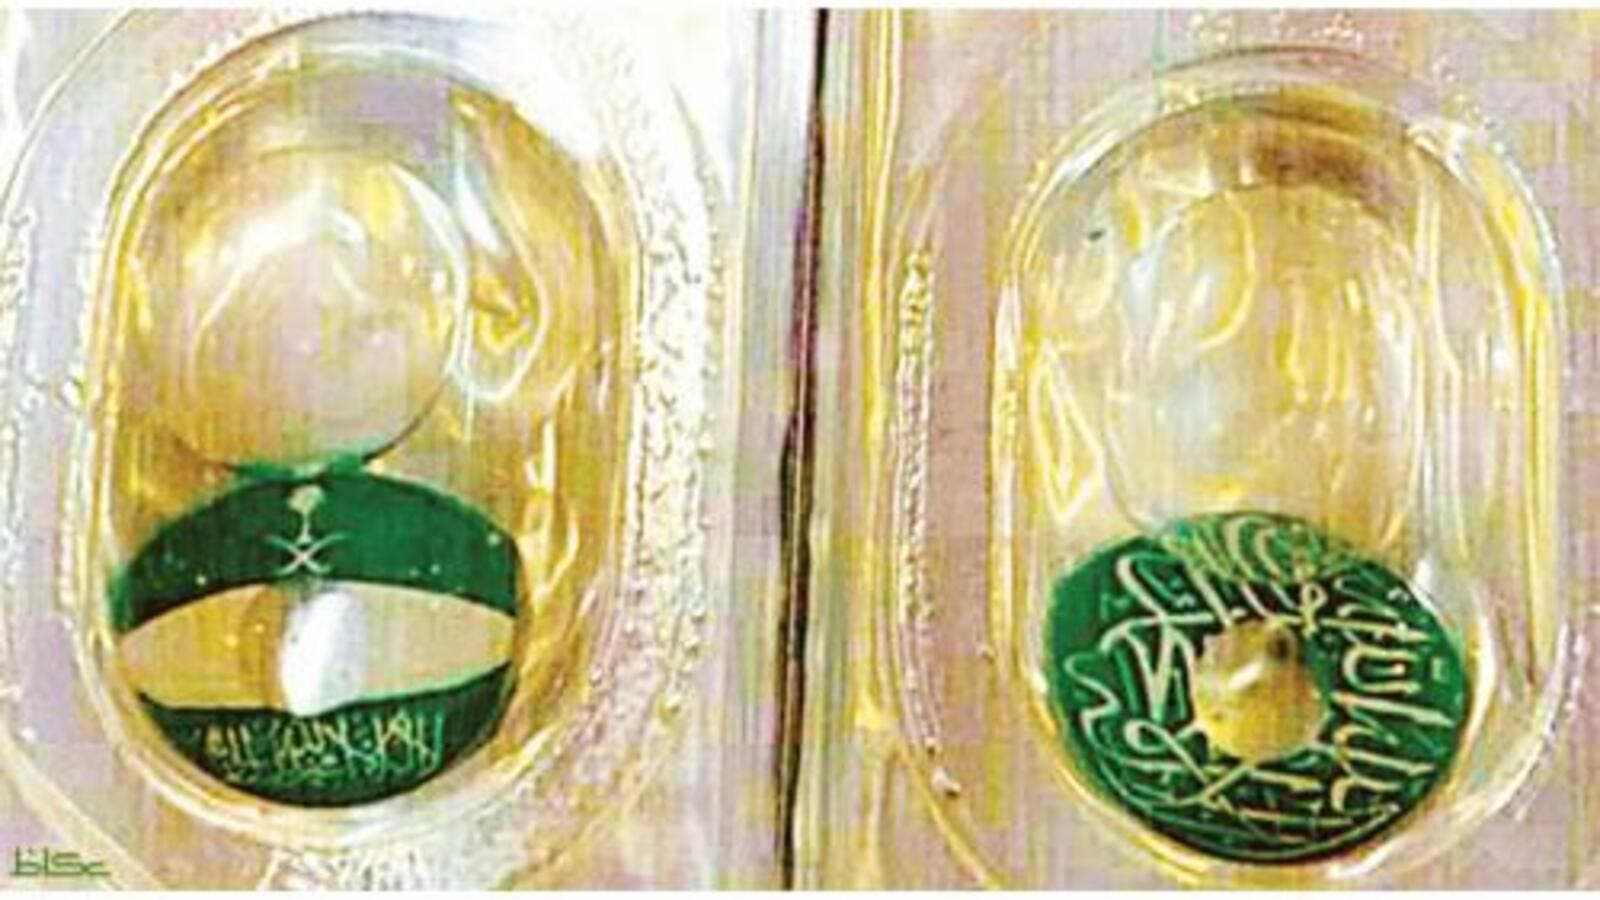 The Saudi Arabian-themed contact lenses (Photo courtesy of Saudi Gazette)